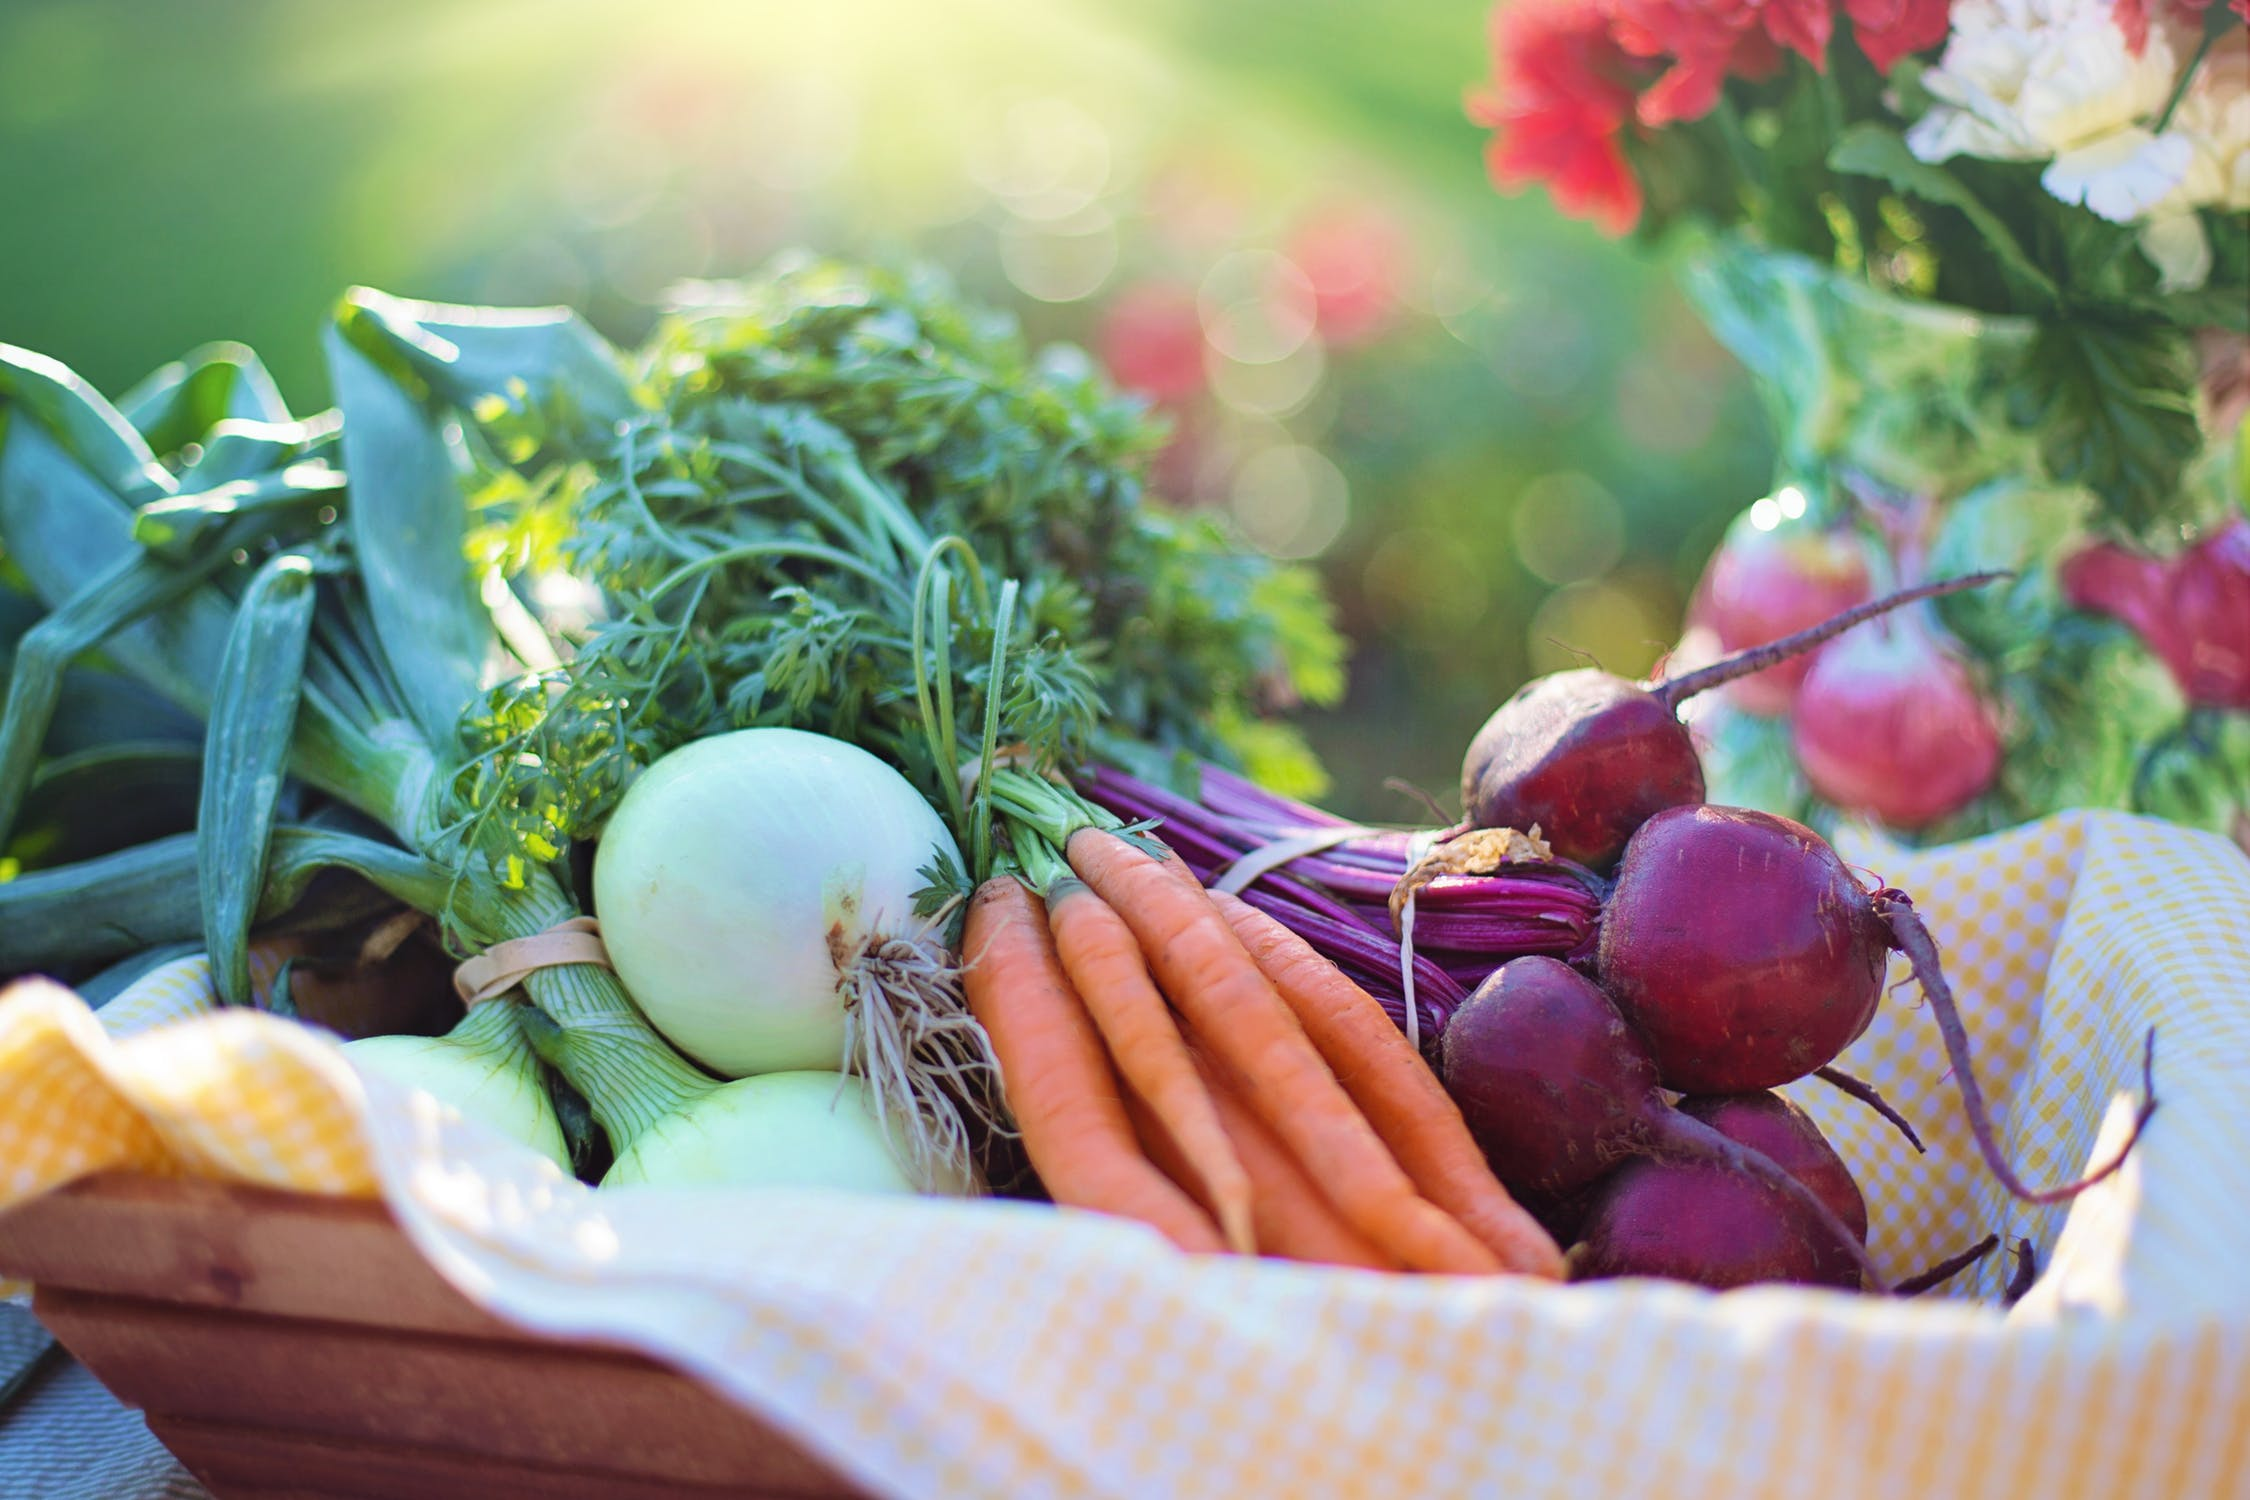 A basket of community garden vegetables: onions, beets, and carrots